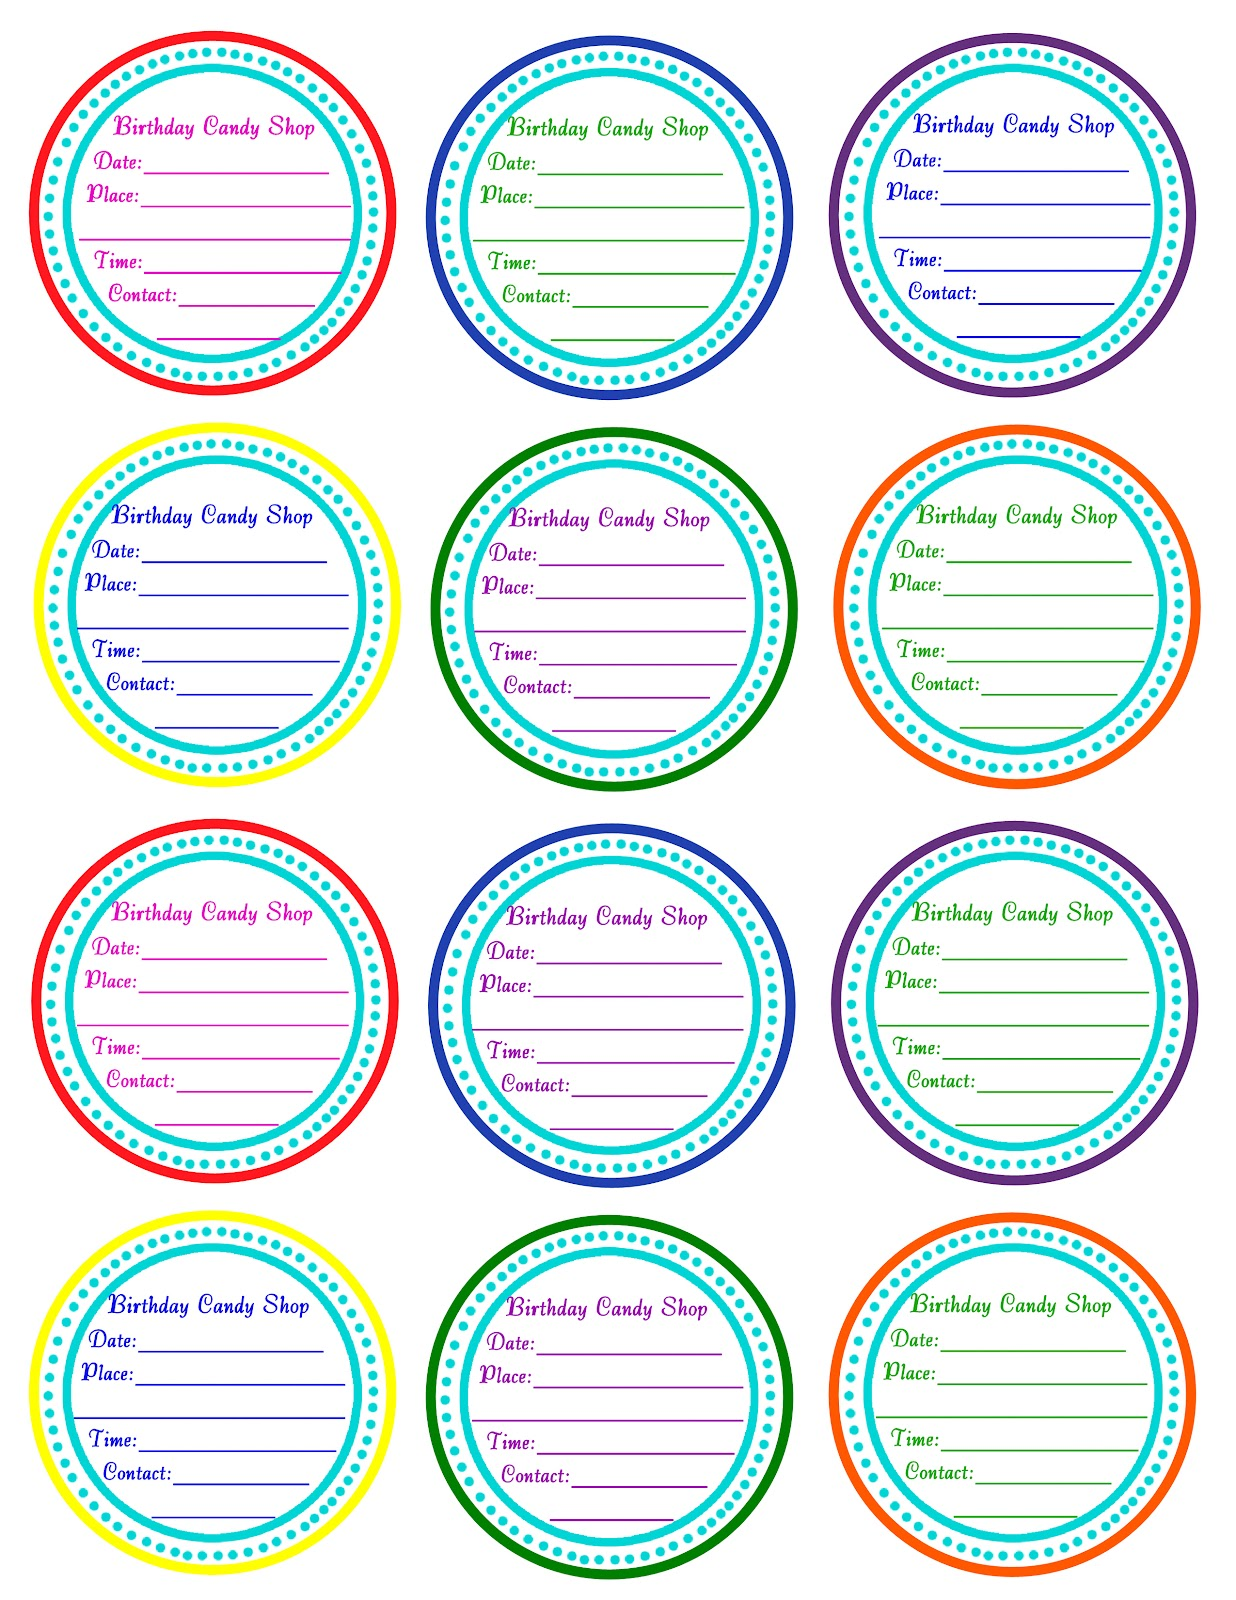 Candyland Party Invitations for amazing invitations sample